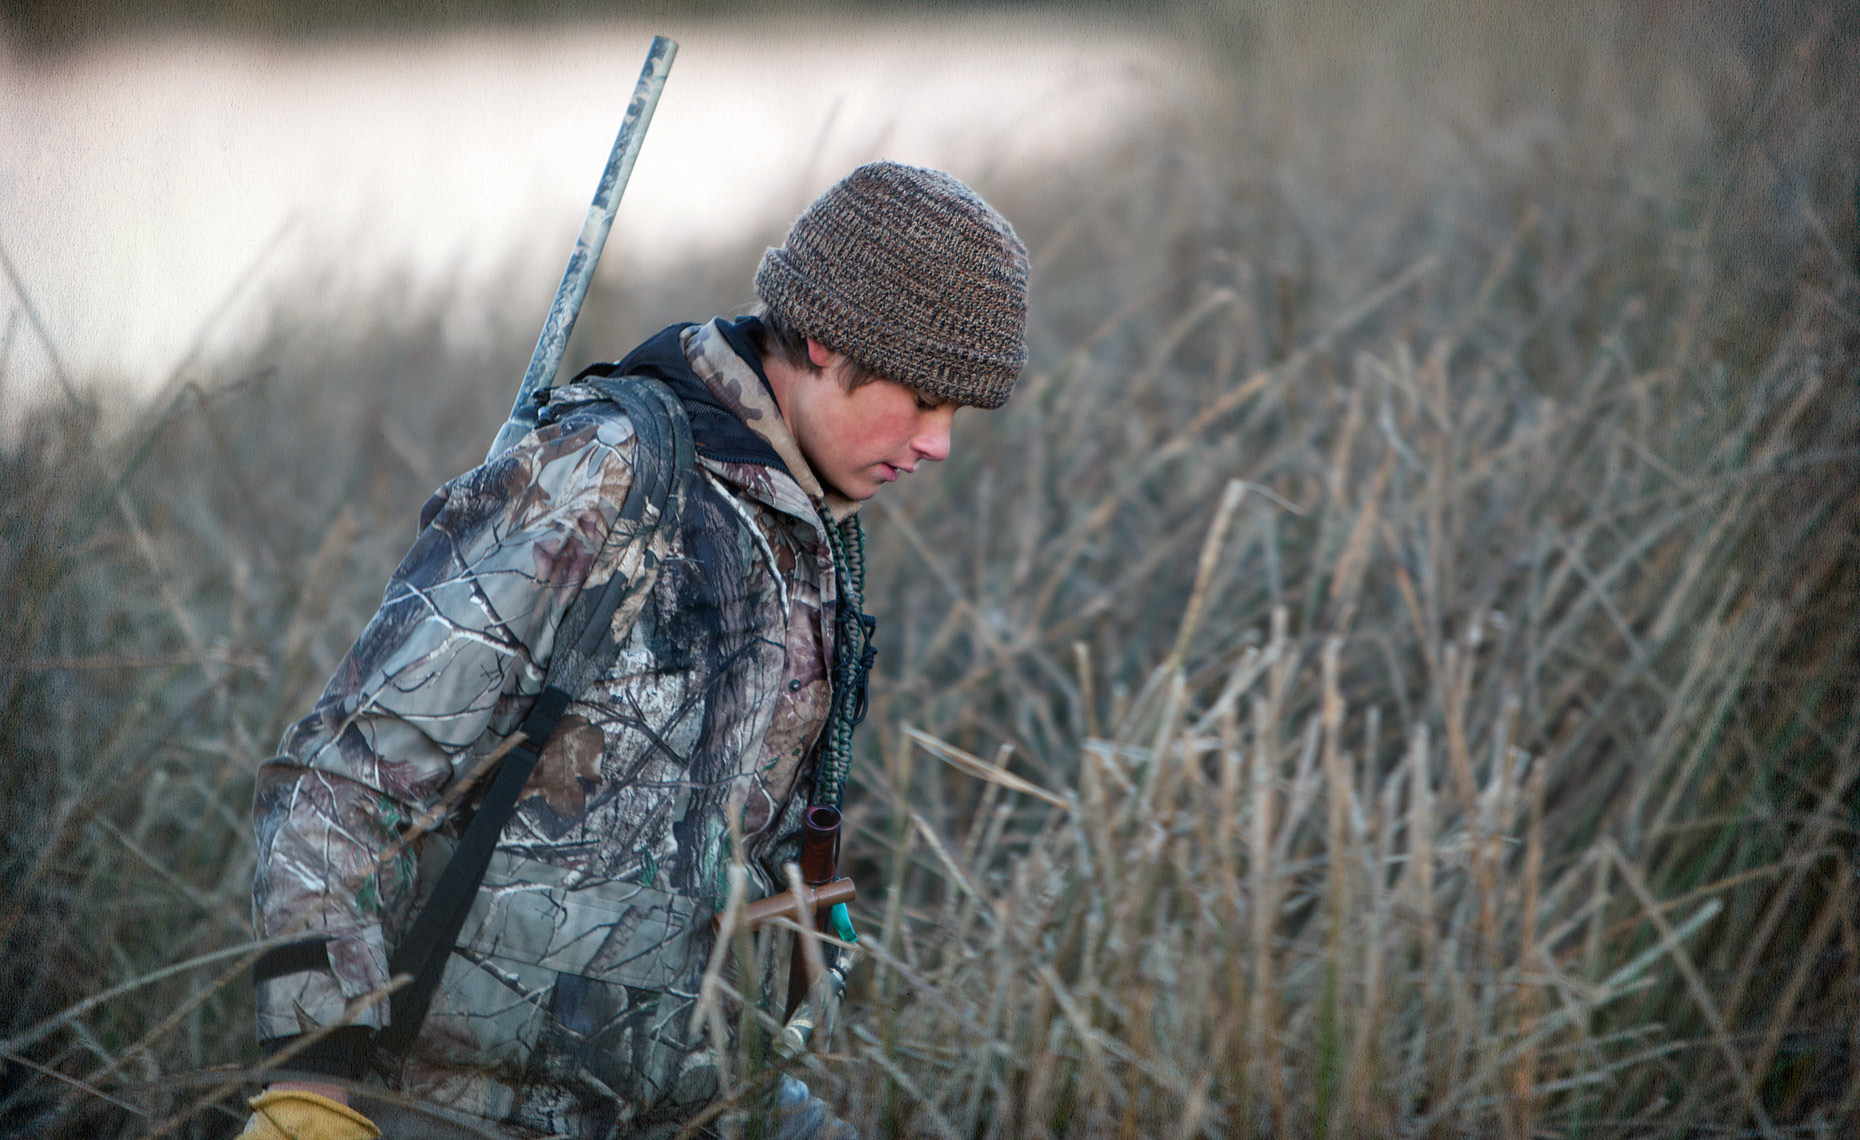 Leaving the duck blind